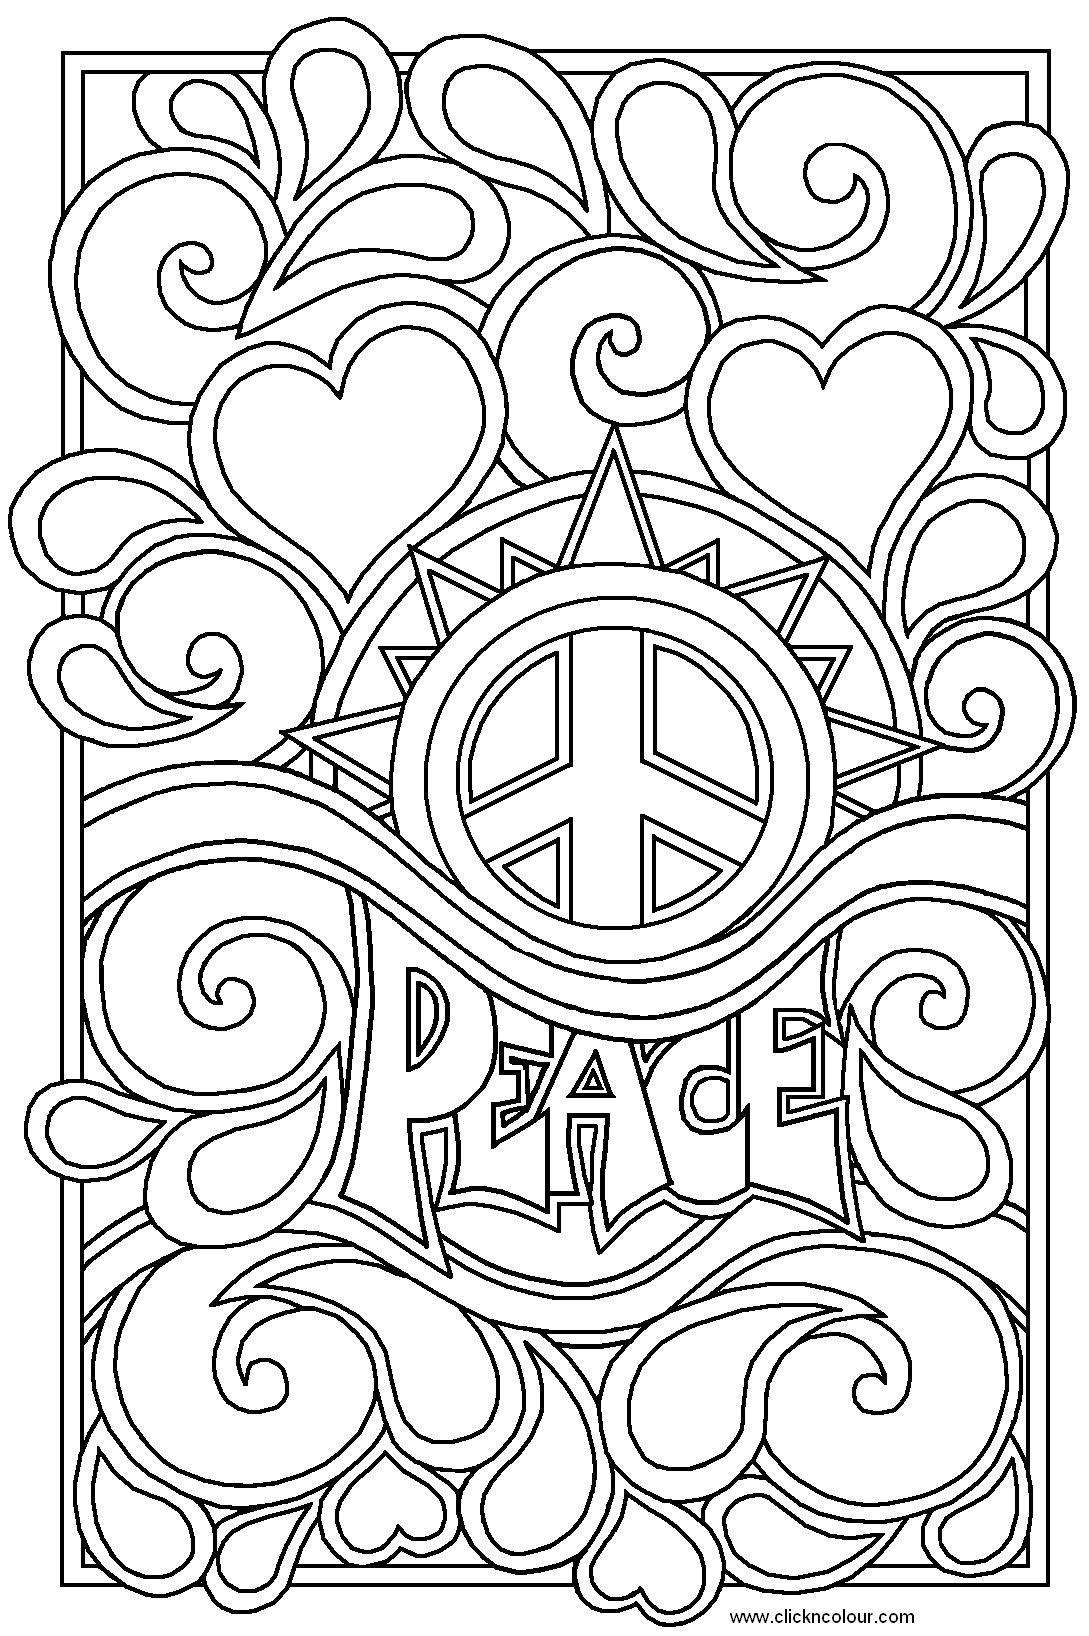 Best 15 peace and love coloring pages pictures for Go sign coloring page